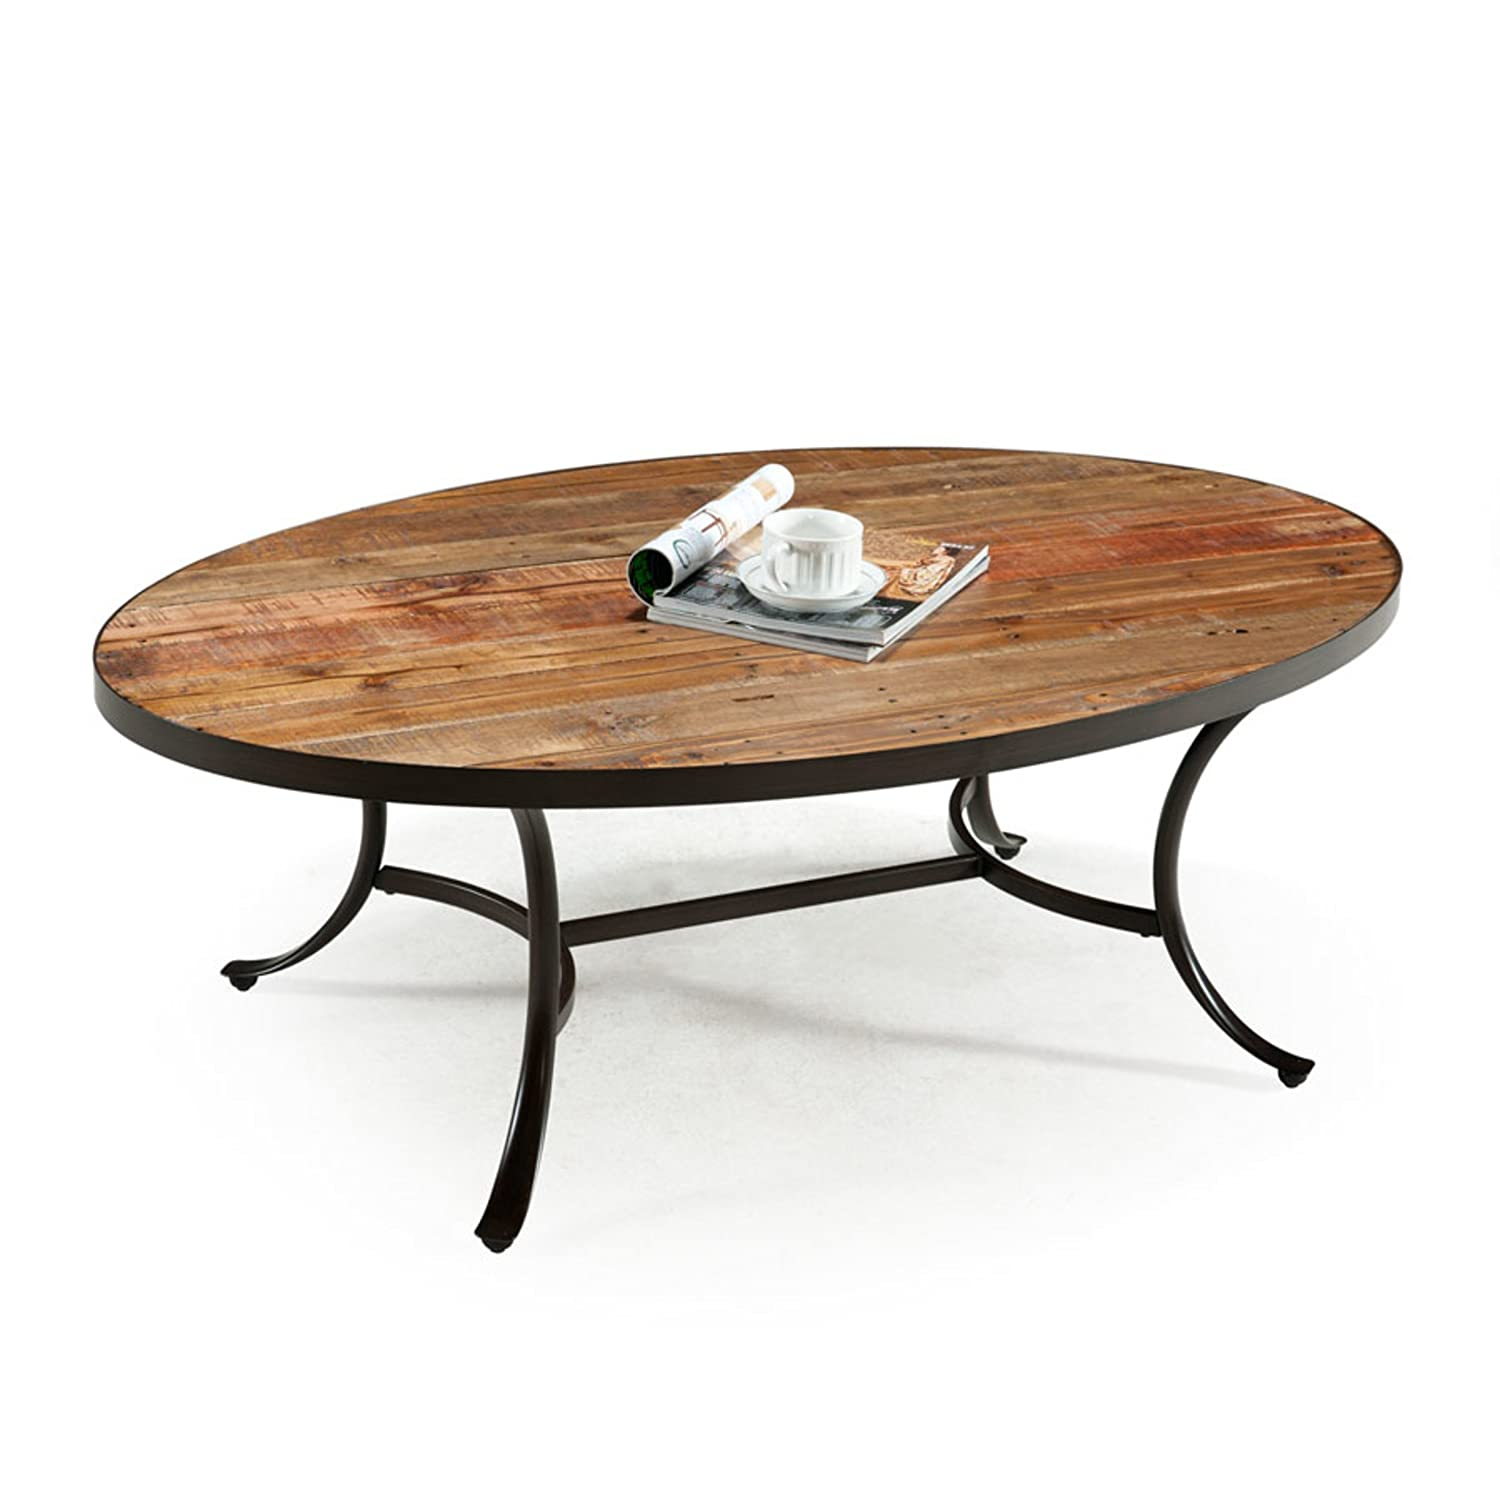 Amazon.com: Emerald Home Berkeley Rustic Wood Coffee Table with Oval Top  And Metal Base: Kitchen & Dining